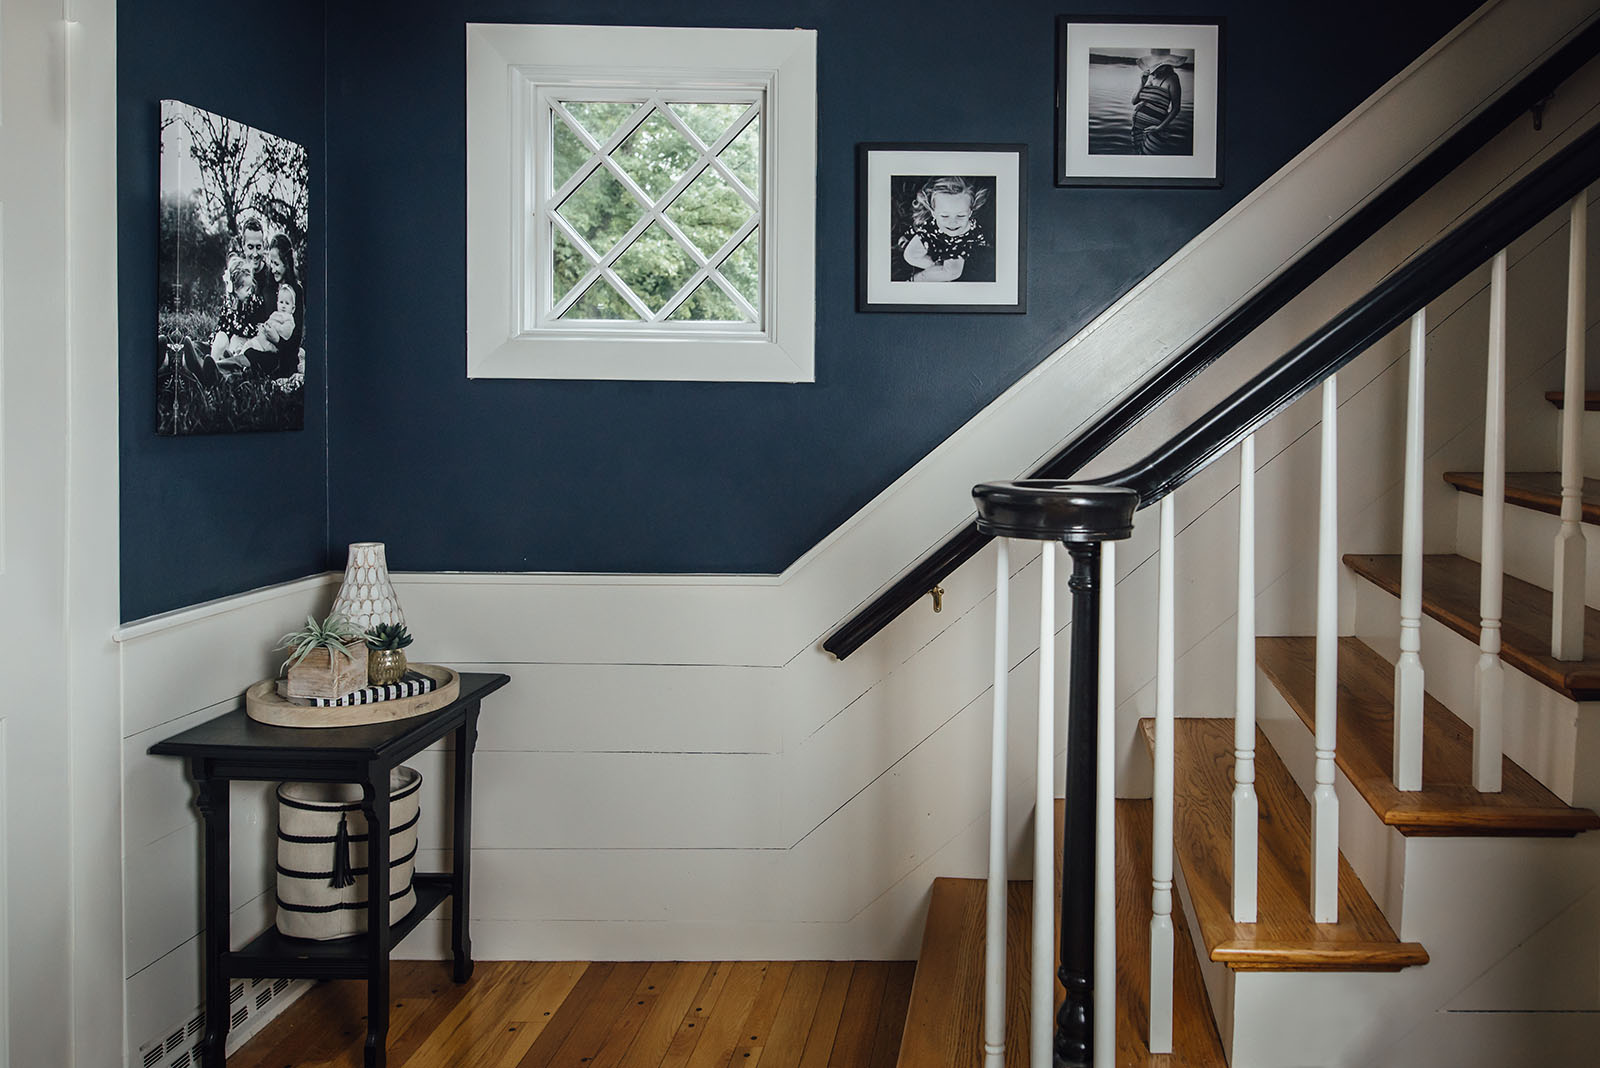 Miller's Professional Imaging photo decor wall display